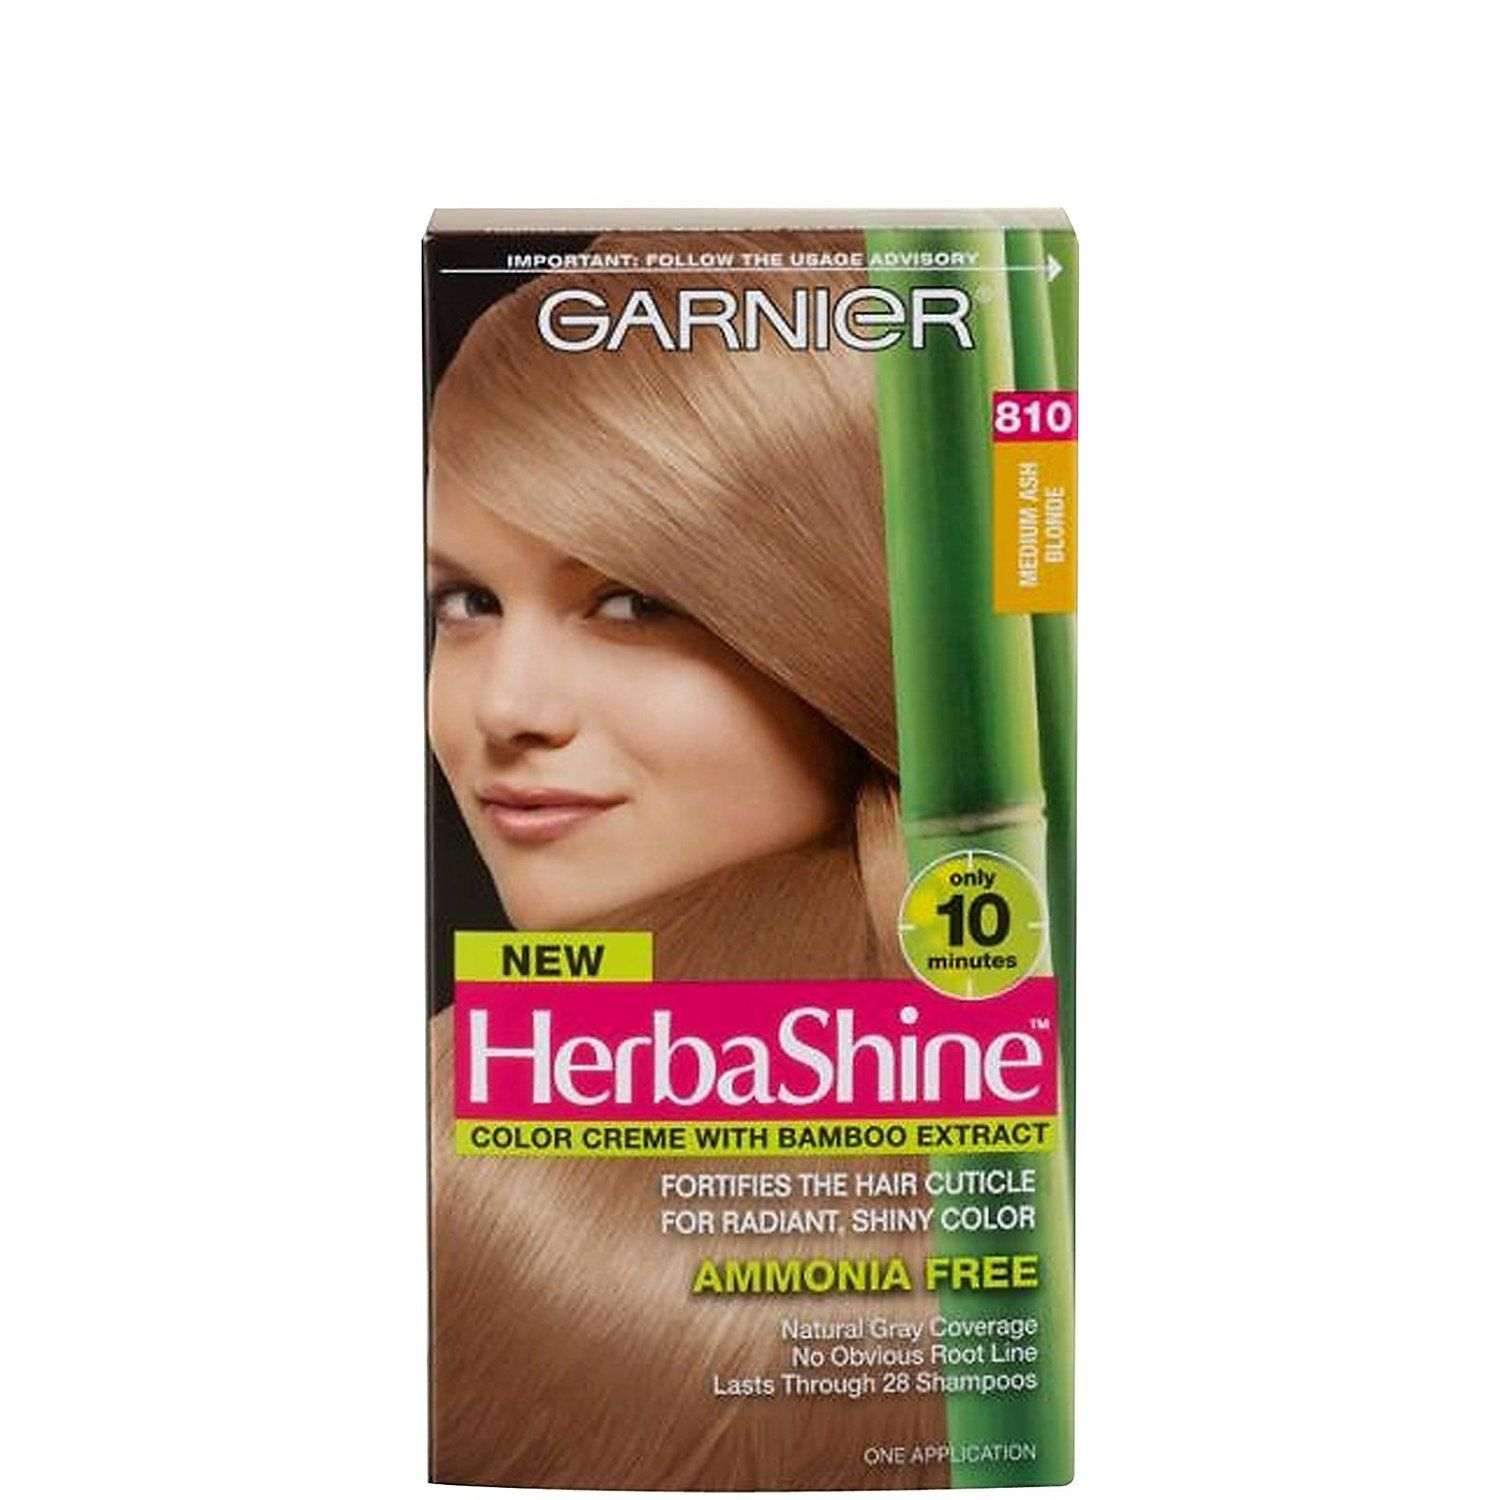 Garnier herba shine hair color creme with bamboo extracts 810 garnier herba shine hair color creme with bamboo extracts 810 medium ash blonde pack of nvjuhfo Image collections